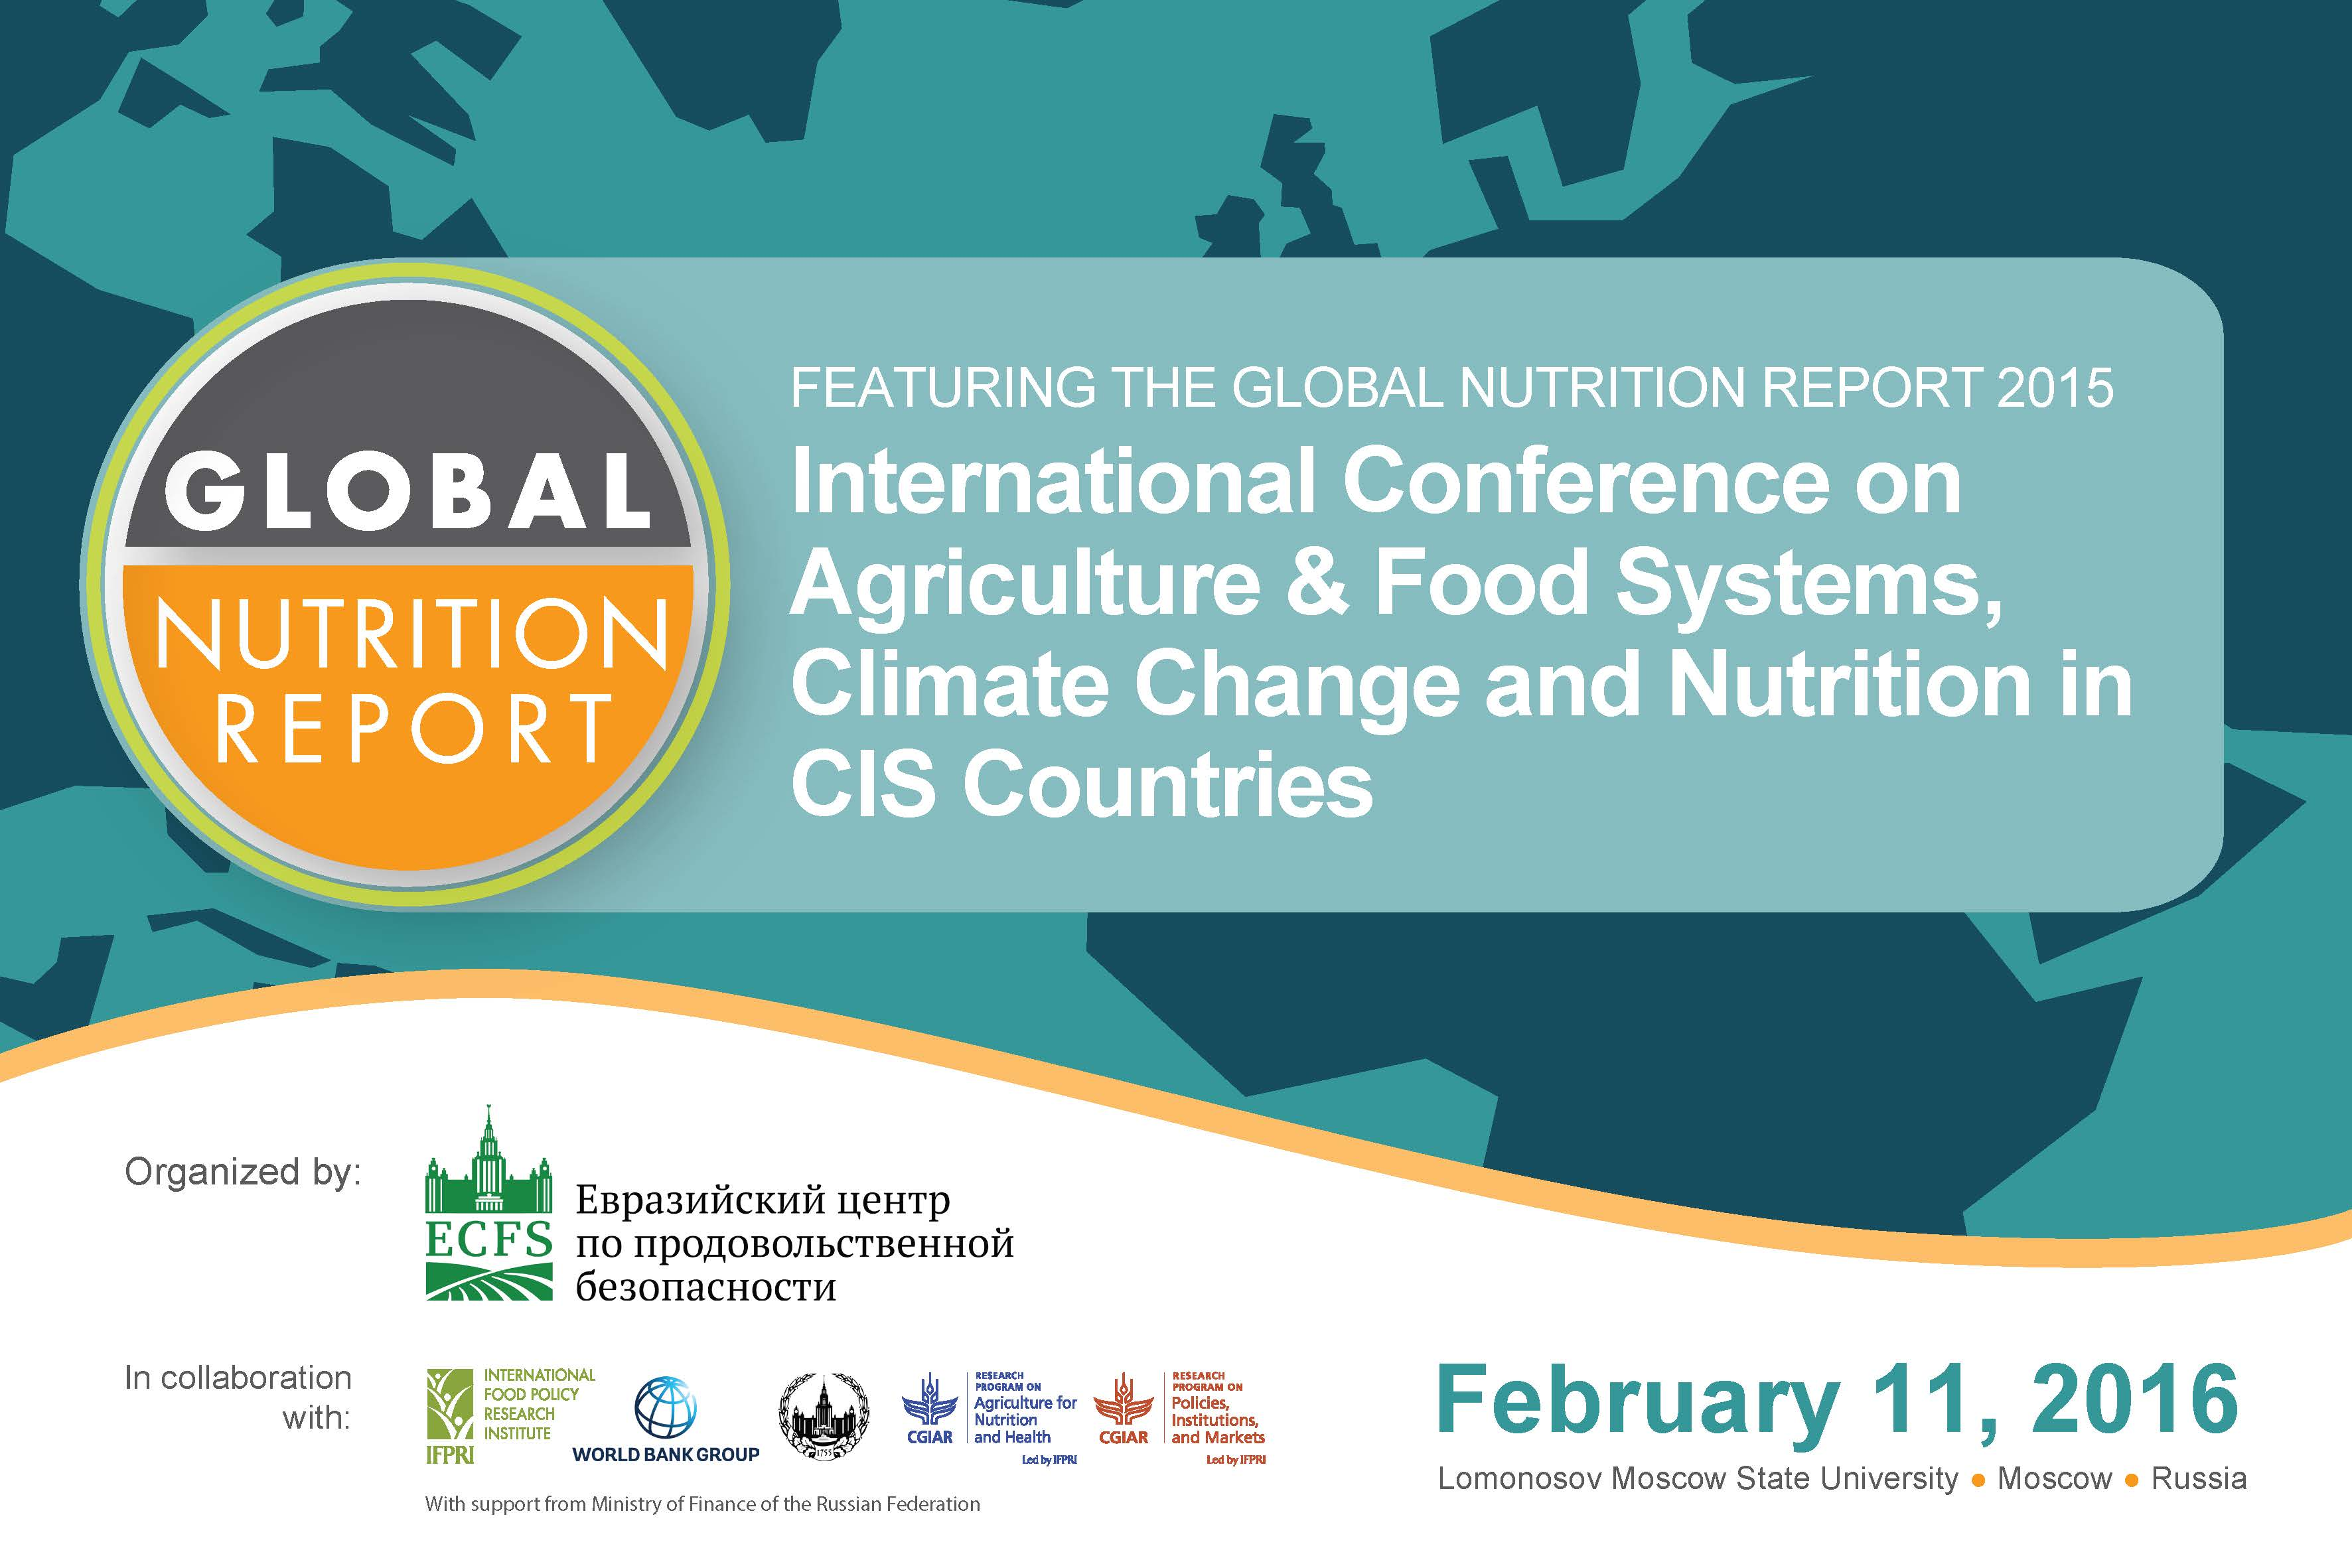 Agriculture & Food Systems, Climate Change and Nutrition in CIS Countries Featuring the Global Nutrition Report 2015